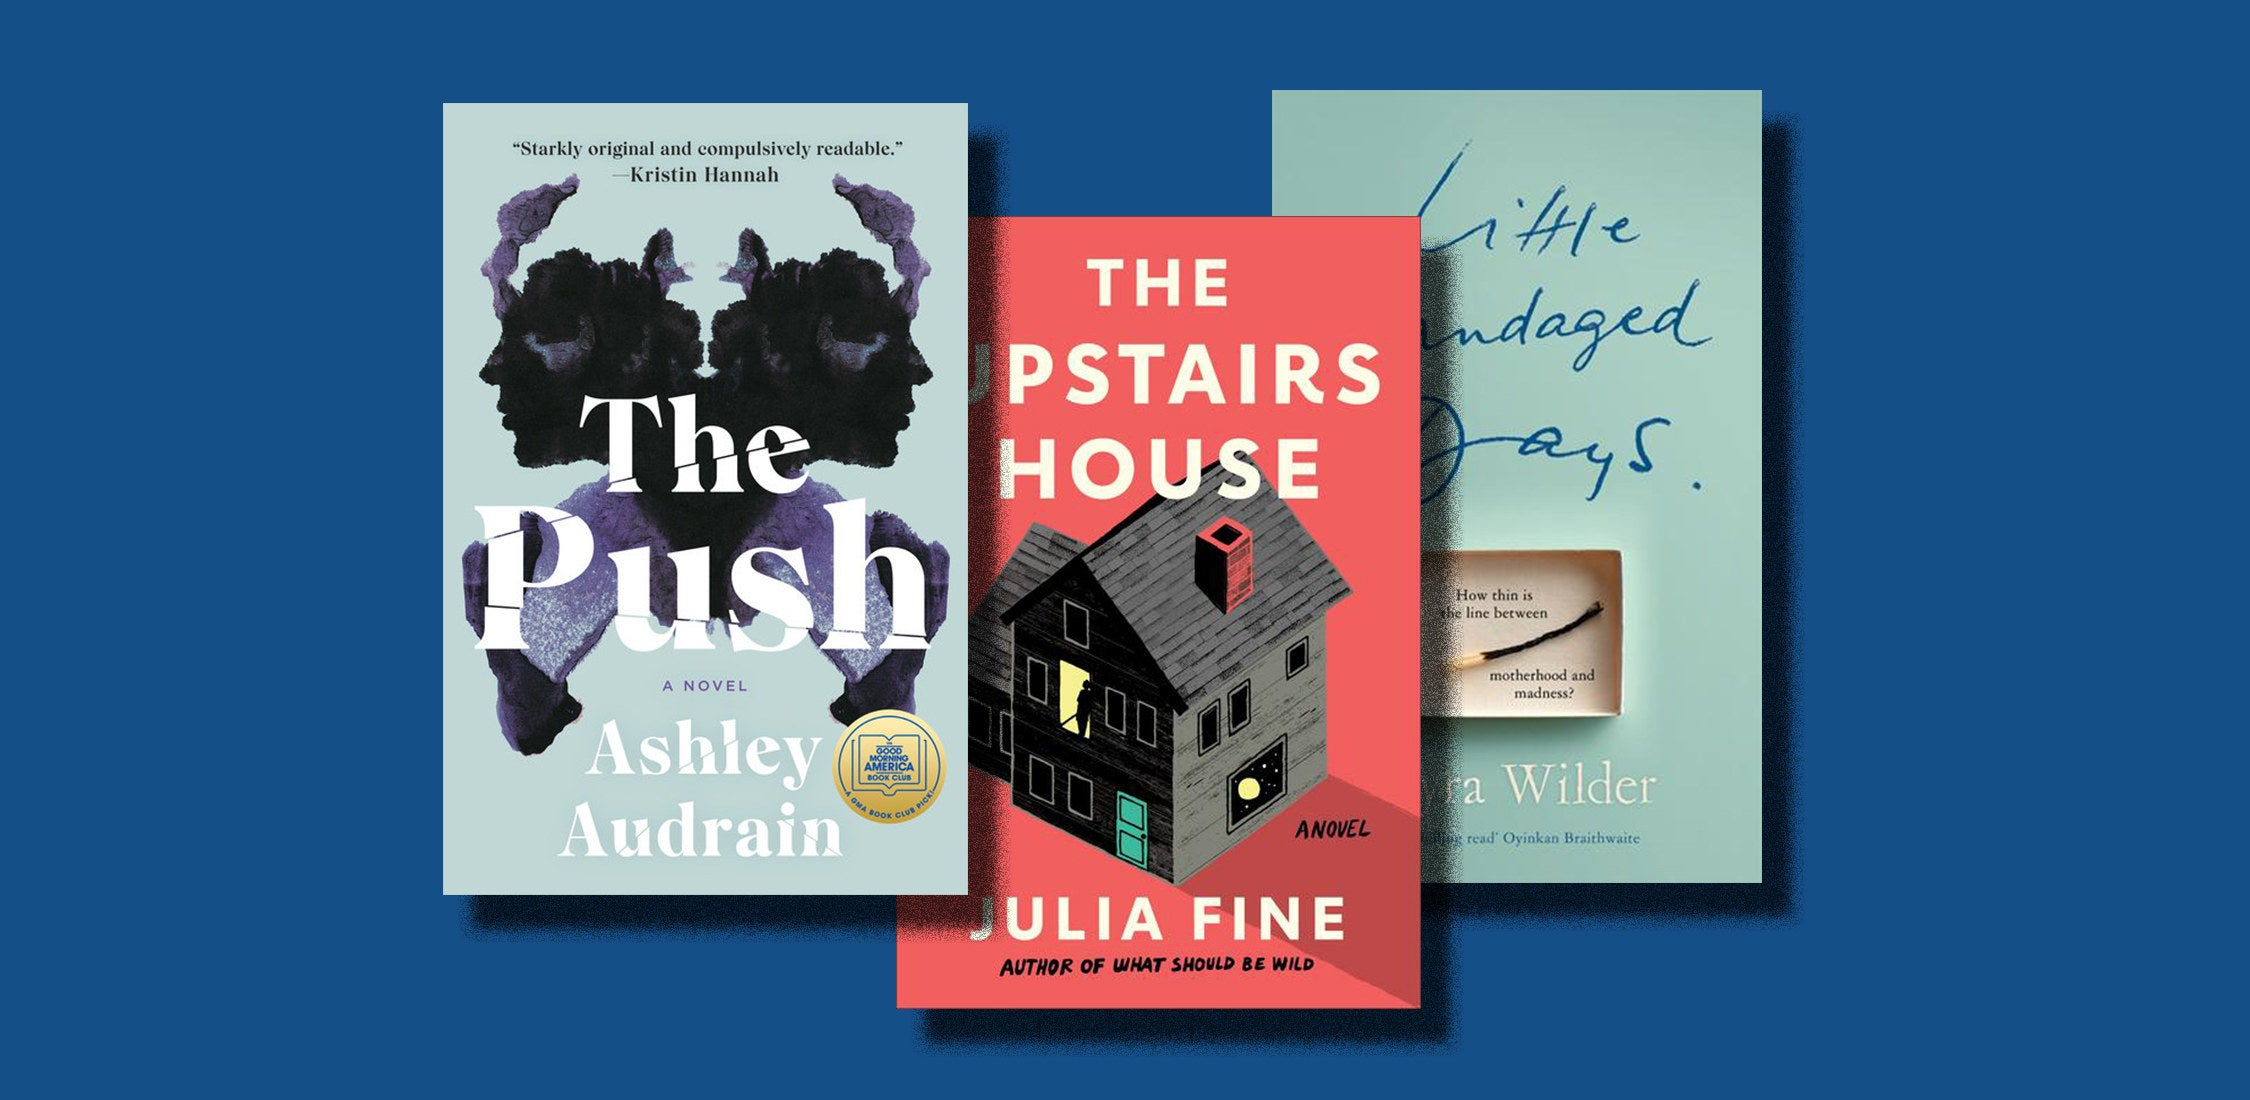 Book covers for The Push, The Upstairs House and Little Bandaged Days